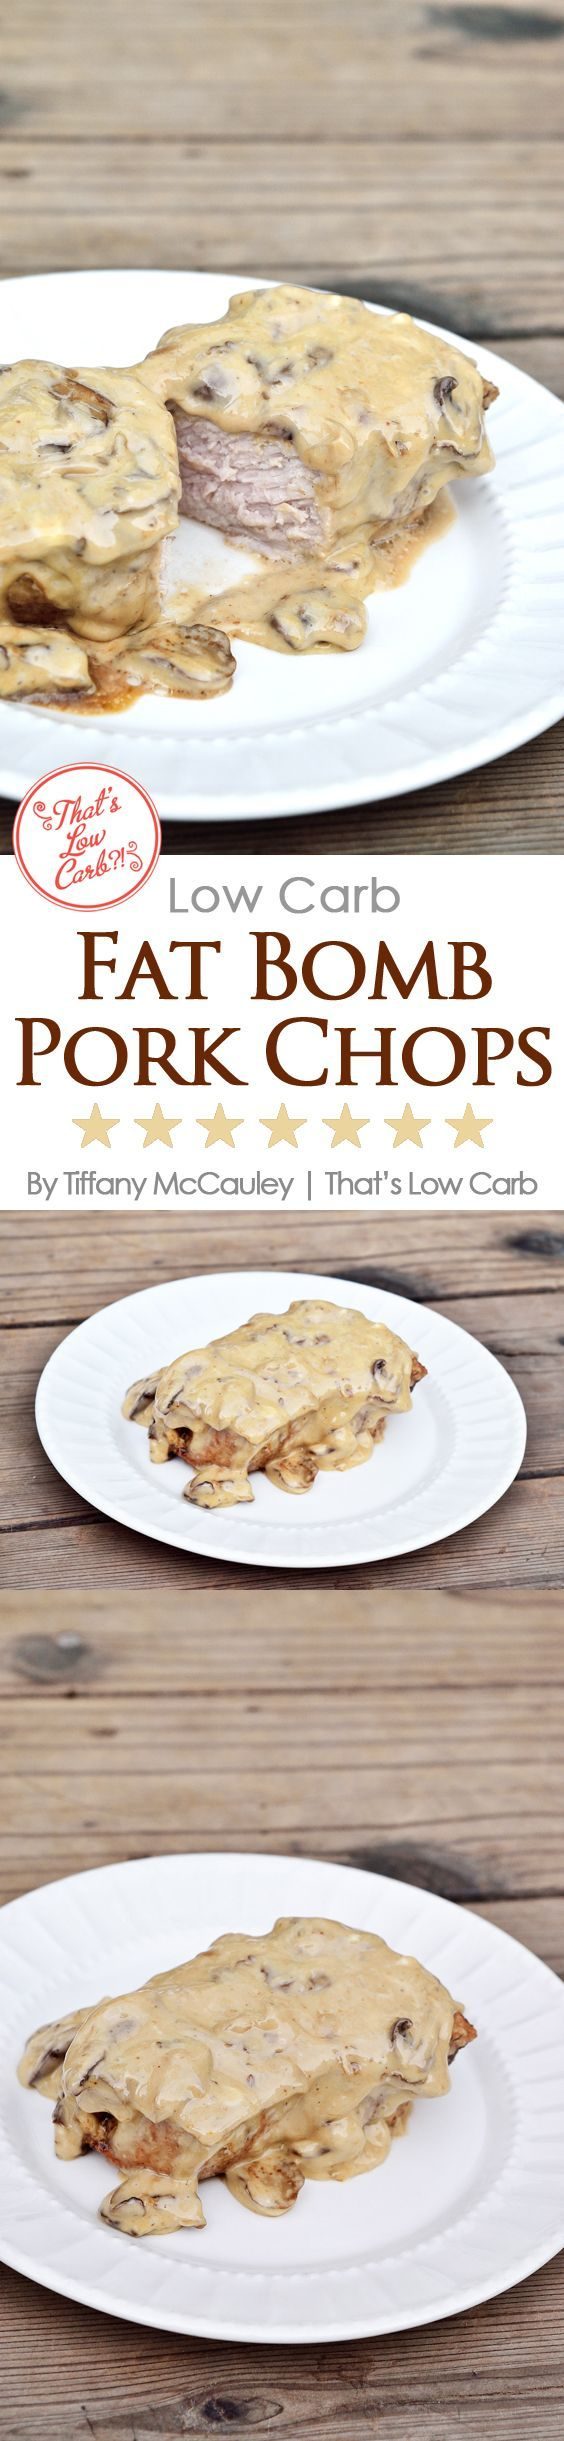 Low Carb Fat Bomb Pork Chops Recipe - Perfect for a Keto diet or just for generally getting plenty of fats in your low carb eating plan. ~ http://www.thatslowcarb.com/low-carb-fat-bomb-pork-chops-recipe/